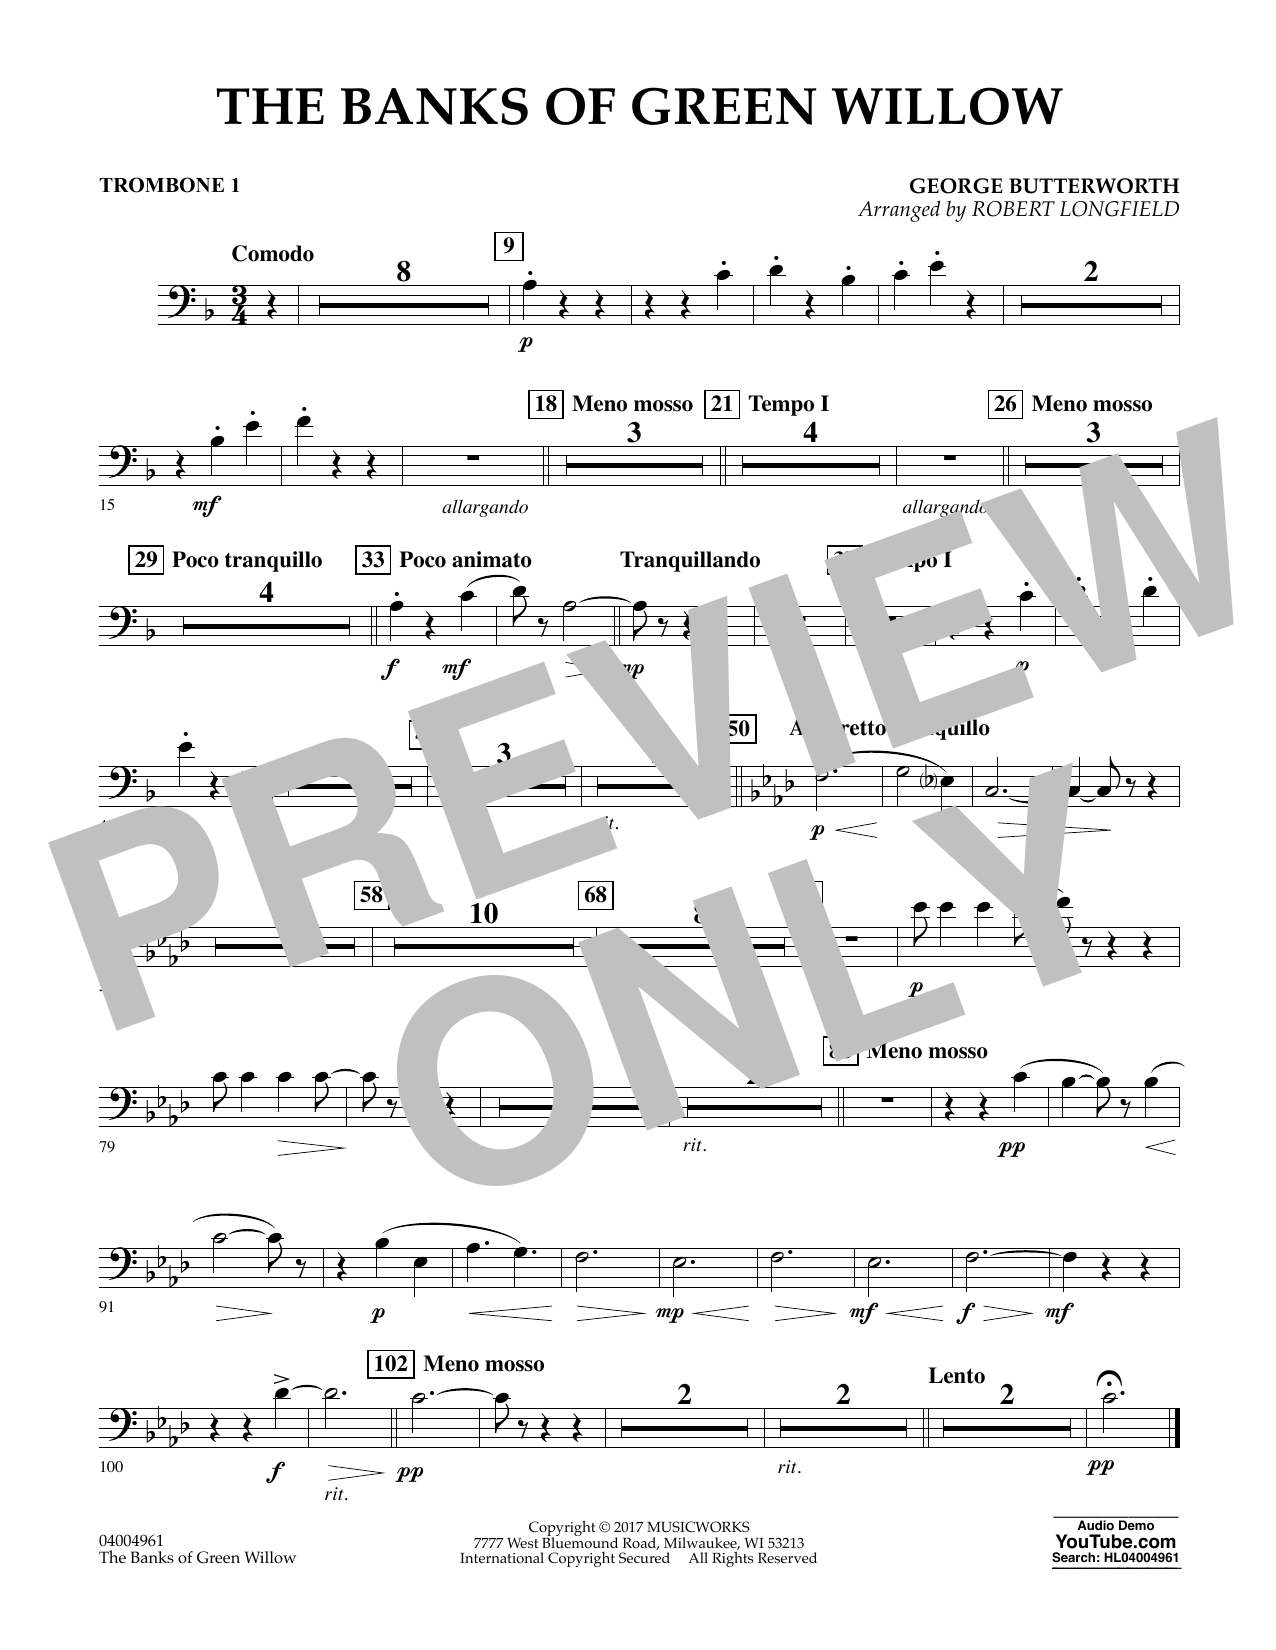 The Banks of Green Willow - Trombone 1 Sheet Music